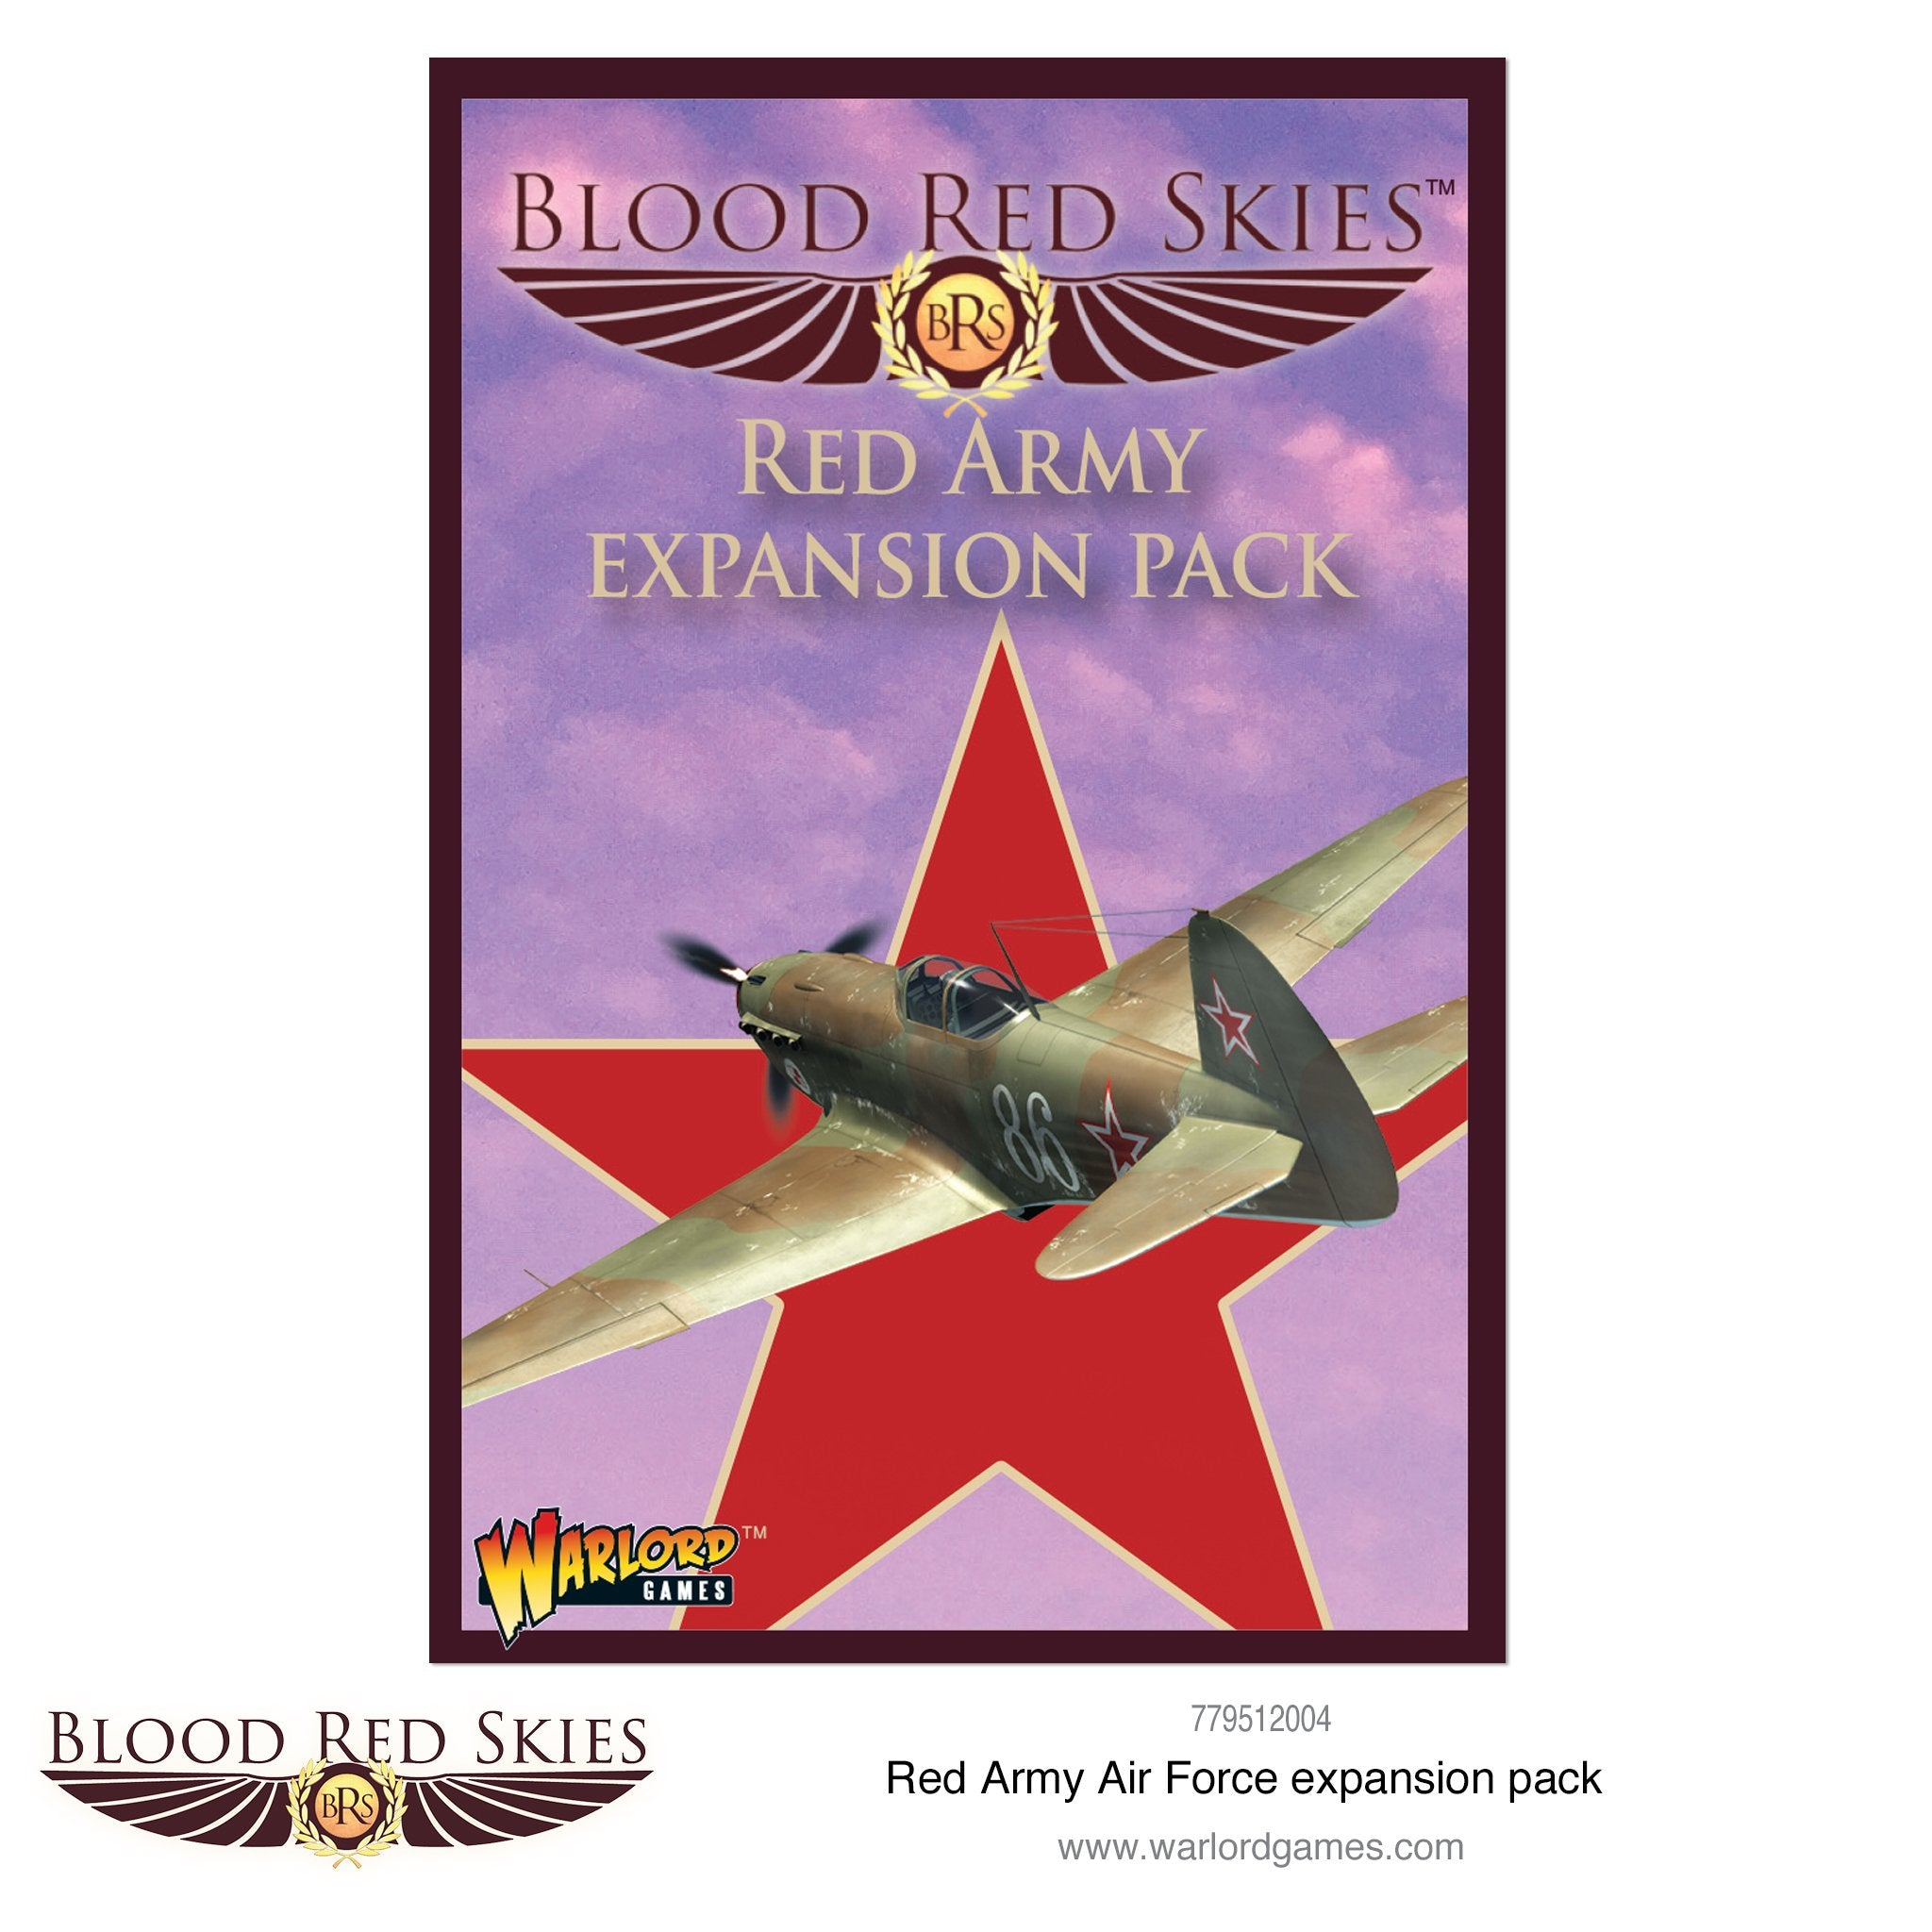 Blood Red Skies Red Army Air Force expansion pack